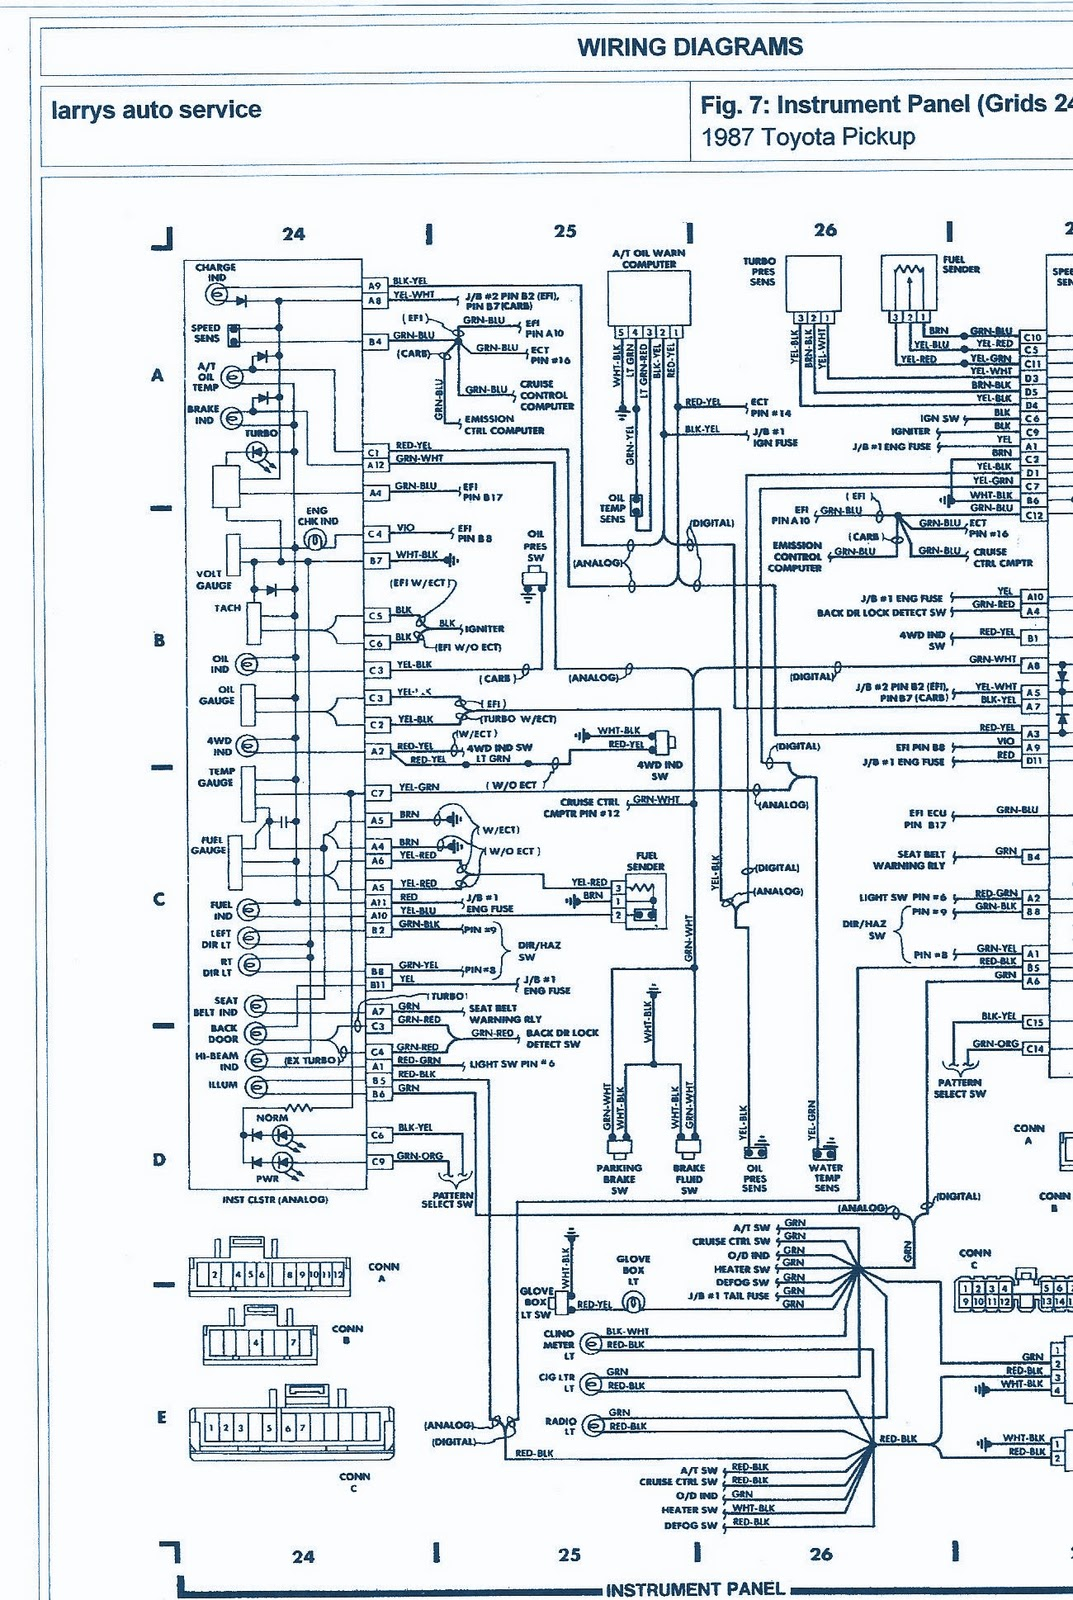 260z Fuse Diagram Explained Wiring Diagrams Box 1974 Datsun 620 Trusted Ford Ranger